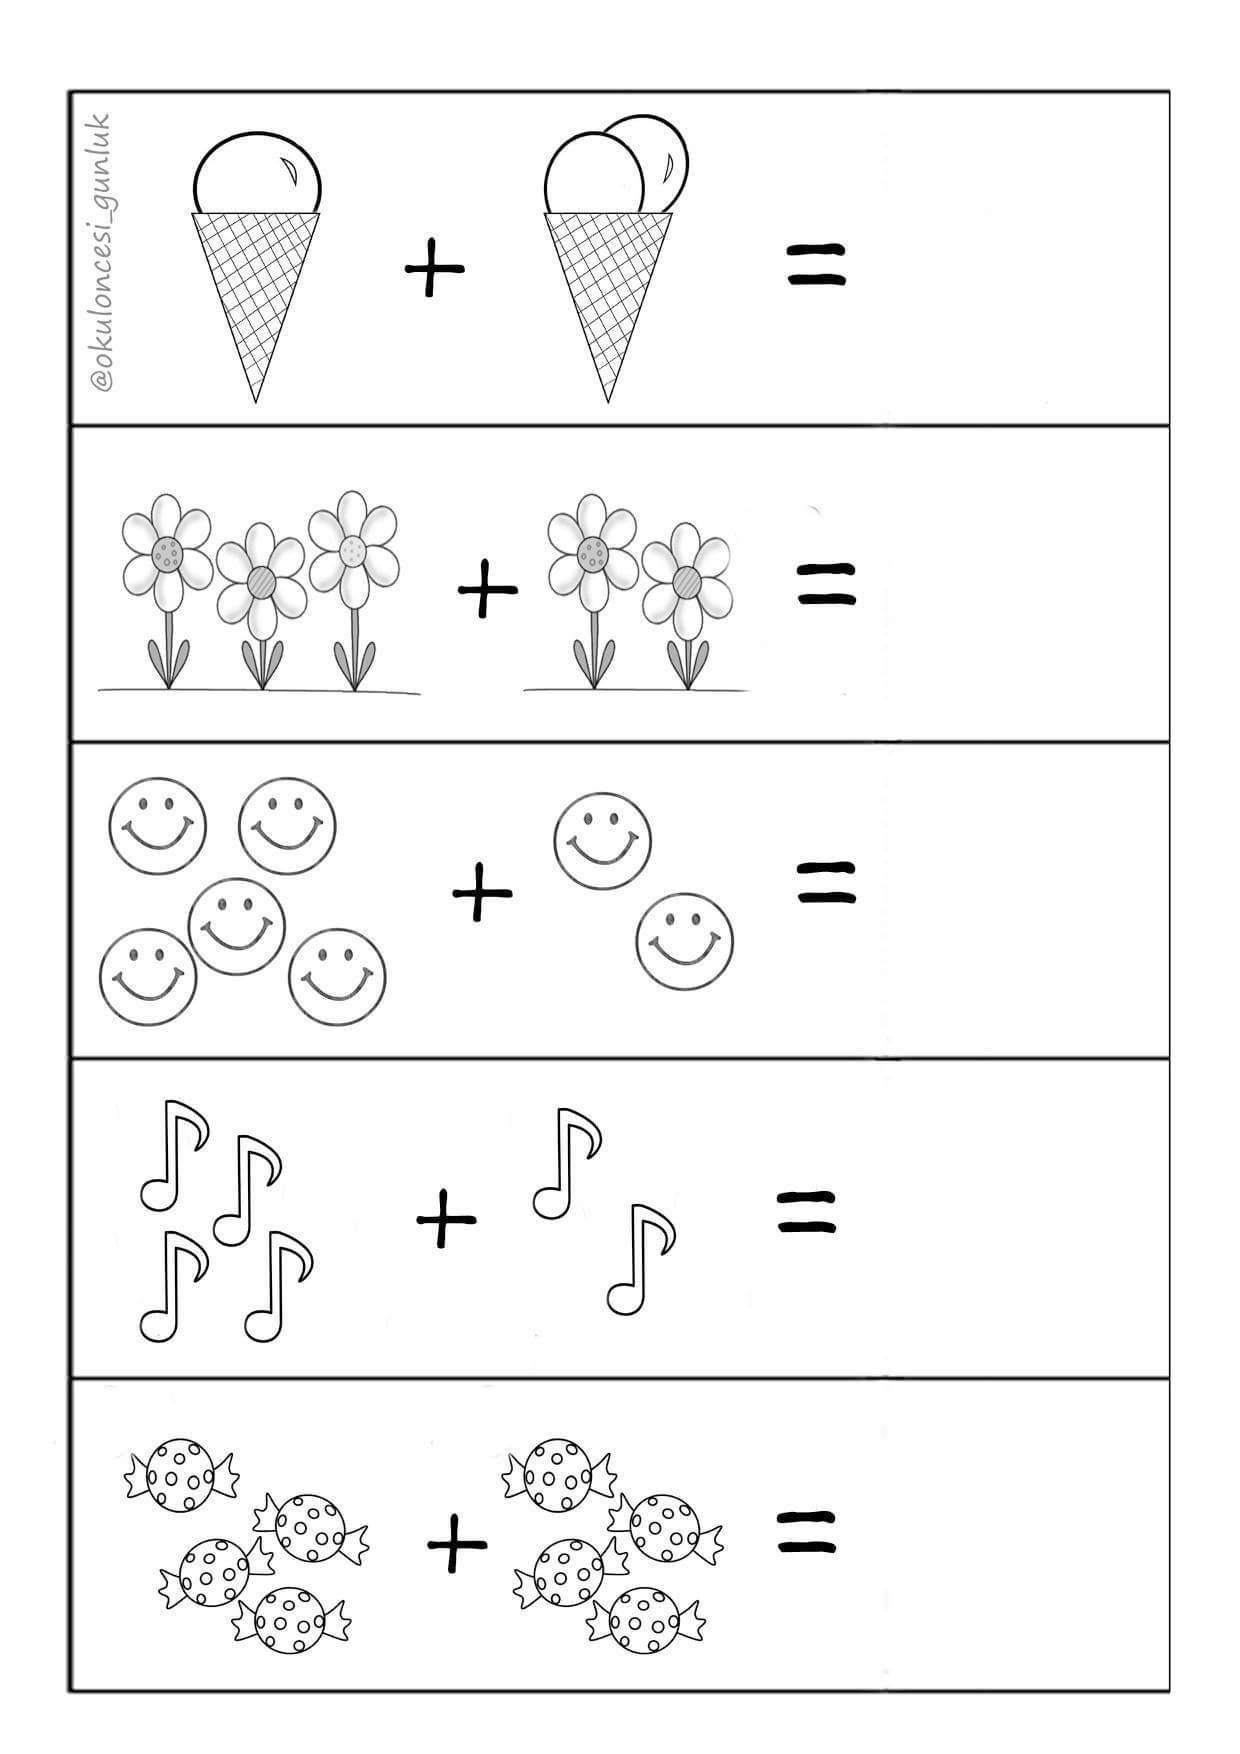 Addition For Kindergarten Worksheets Worksheet For Kindergarten Kindergarten Math Worksheets Preschool Math Worksheets Kindergarten Math